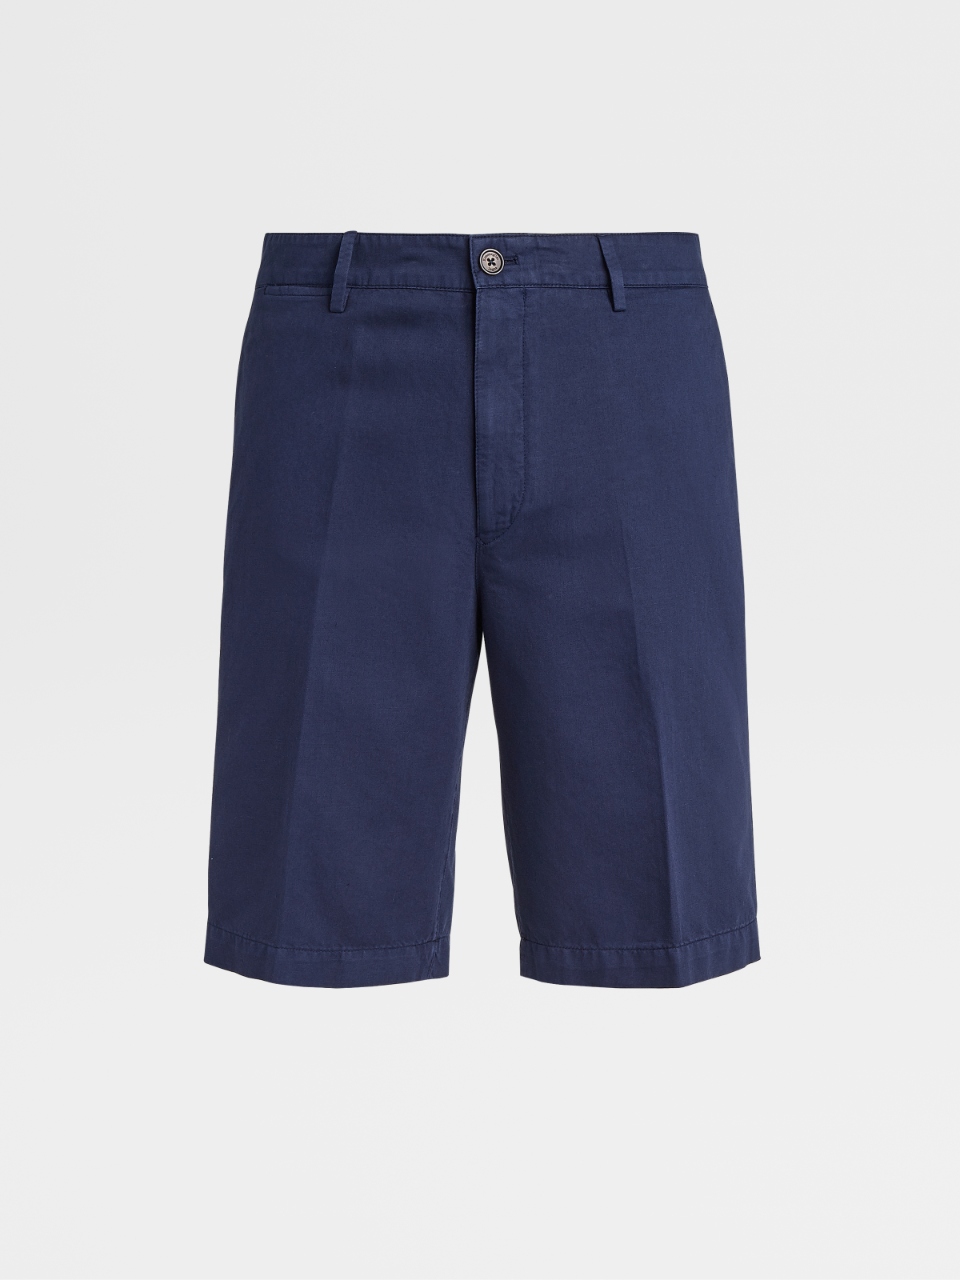 Cotton And Linen Short Trousers